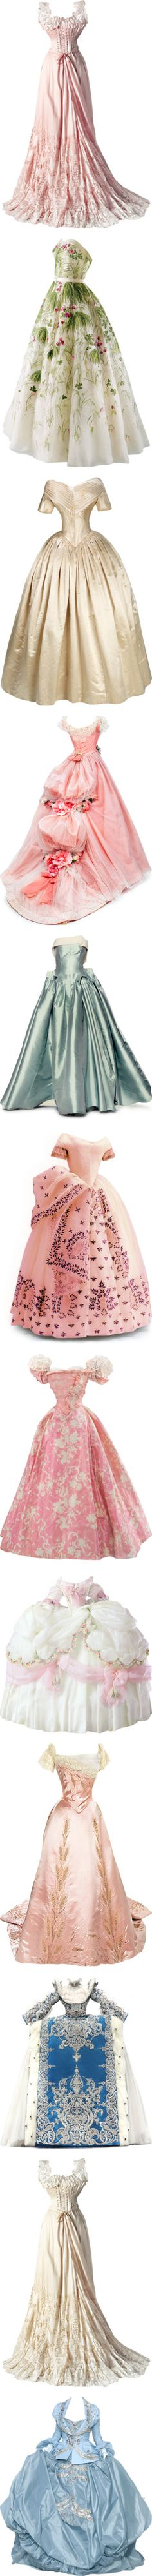 Fashion From the Past by satinee on Polyvore featuring dresses, gowns, vestidos, long dresses, satinee, retro print dress, vintage long dress, retro-style dresses, vintage ball gowns and pink ball gown